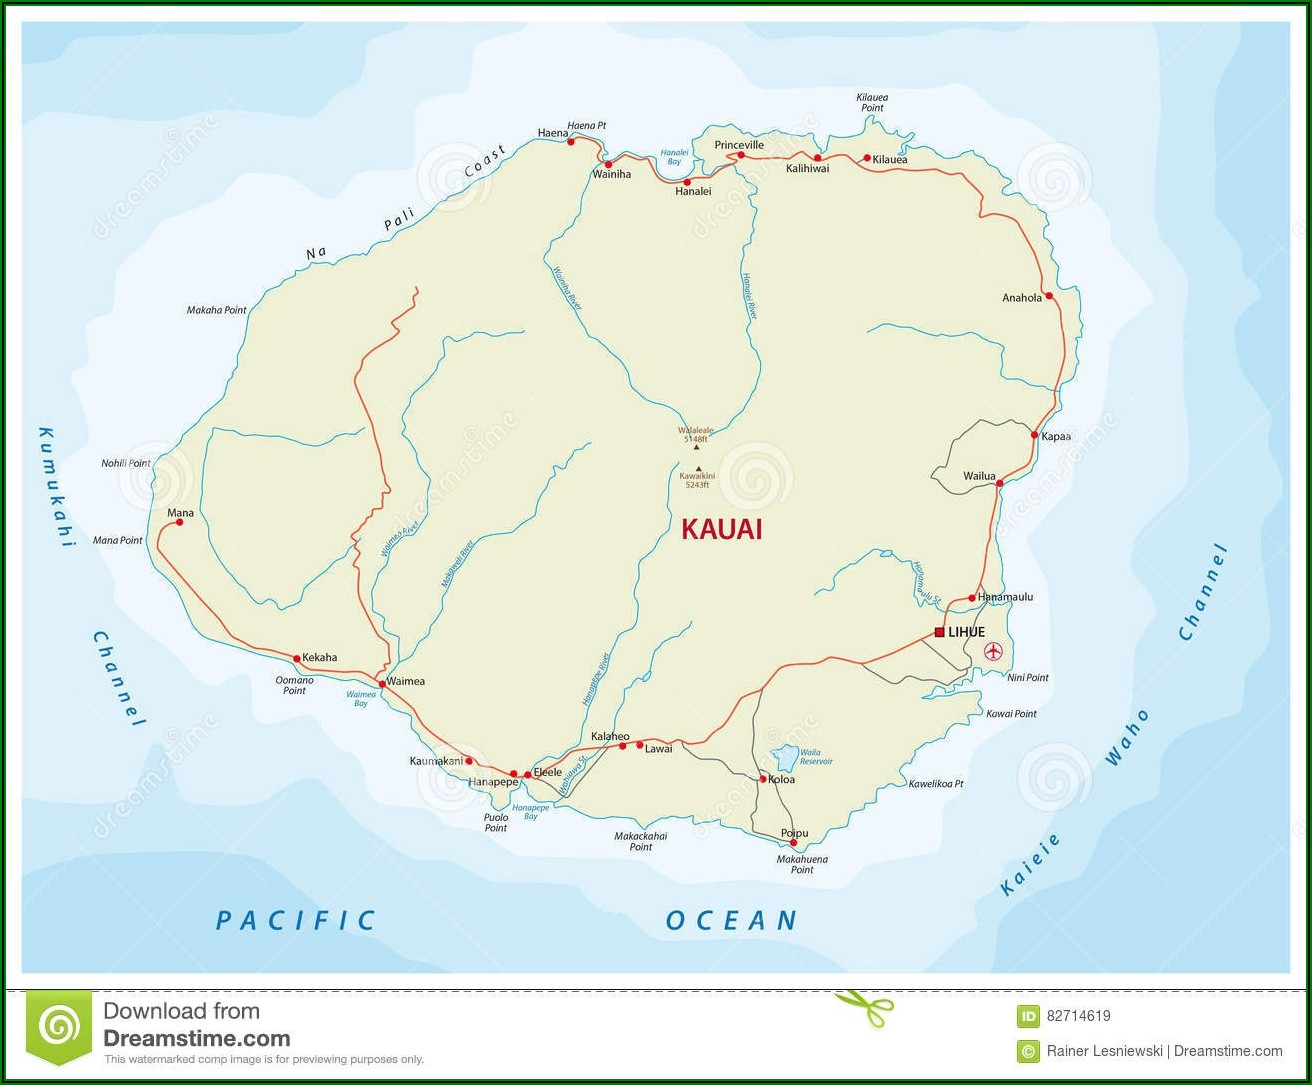 Detailed Road Map Of Kauai